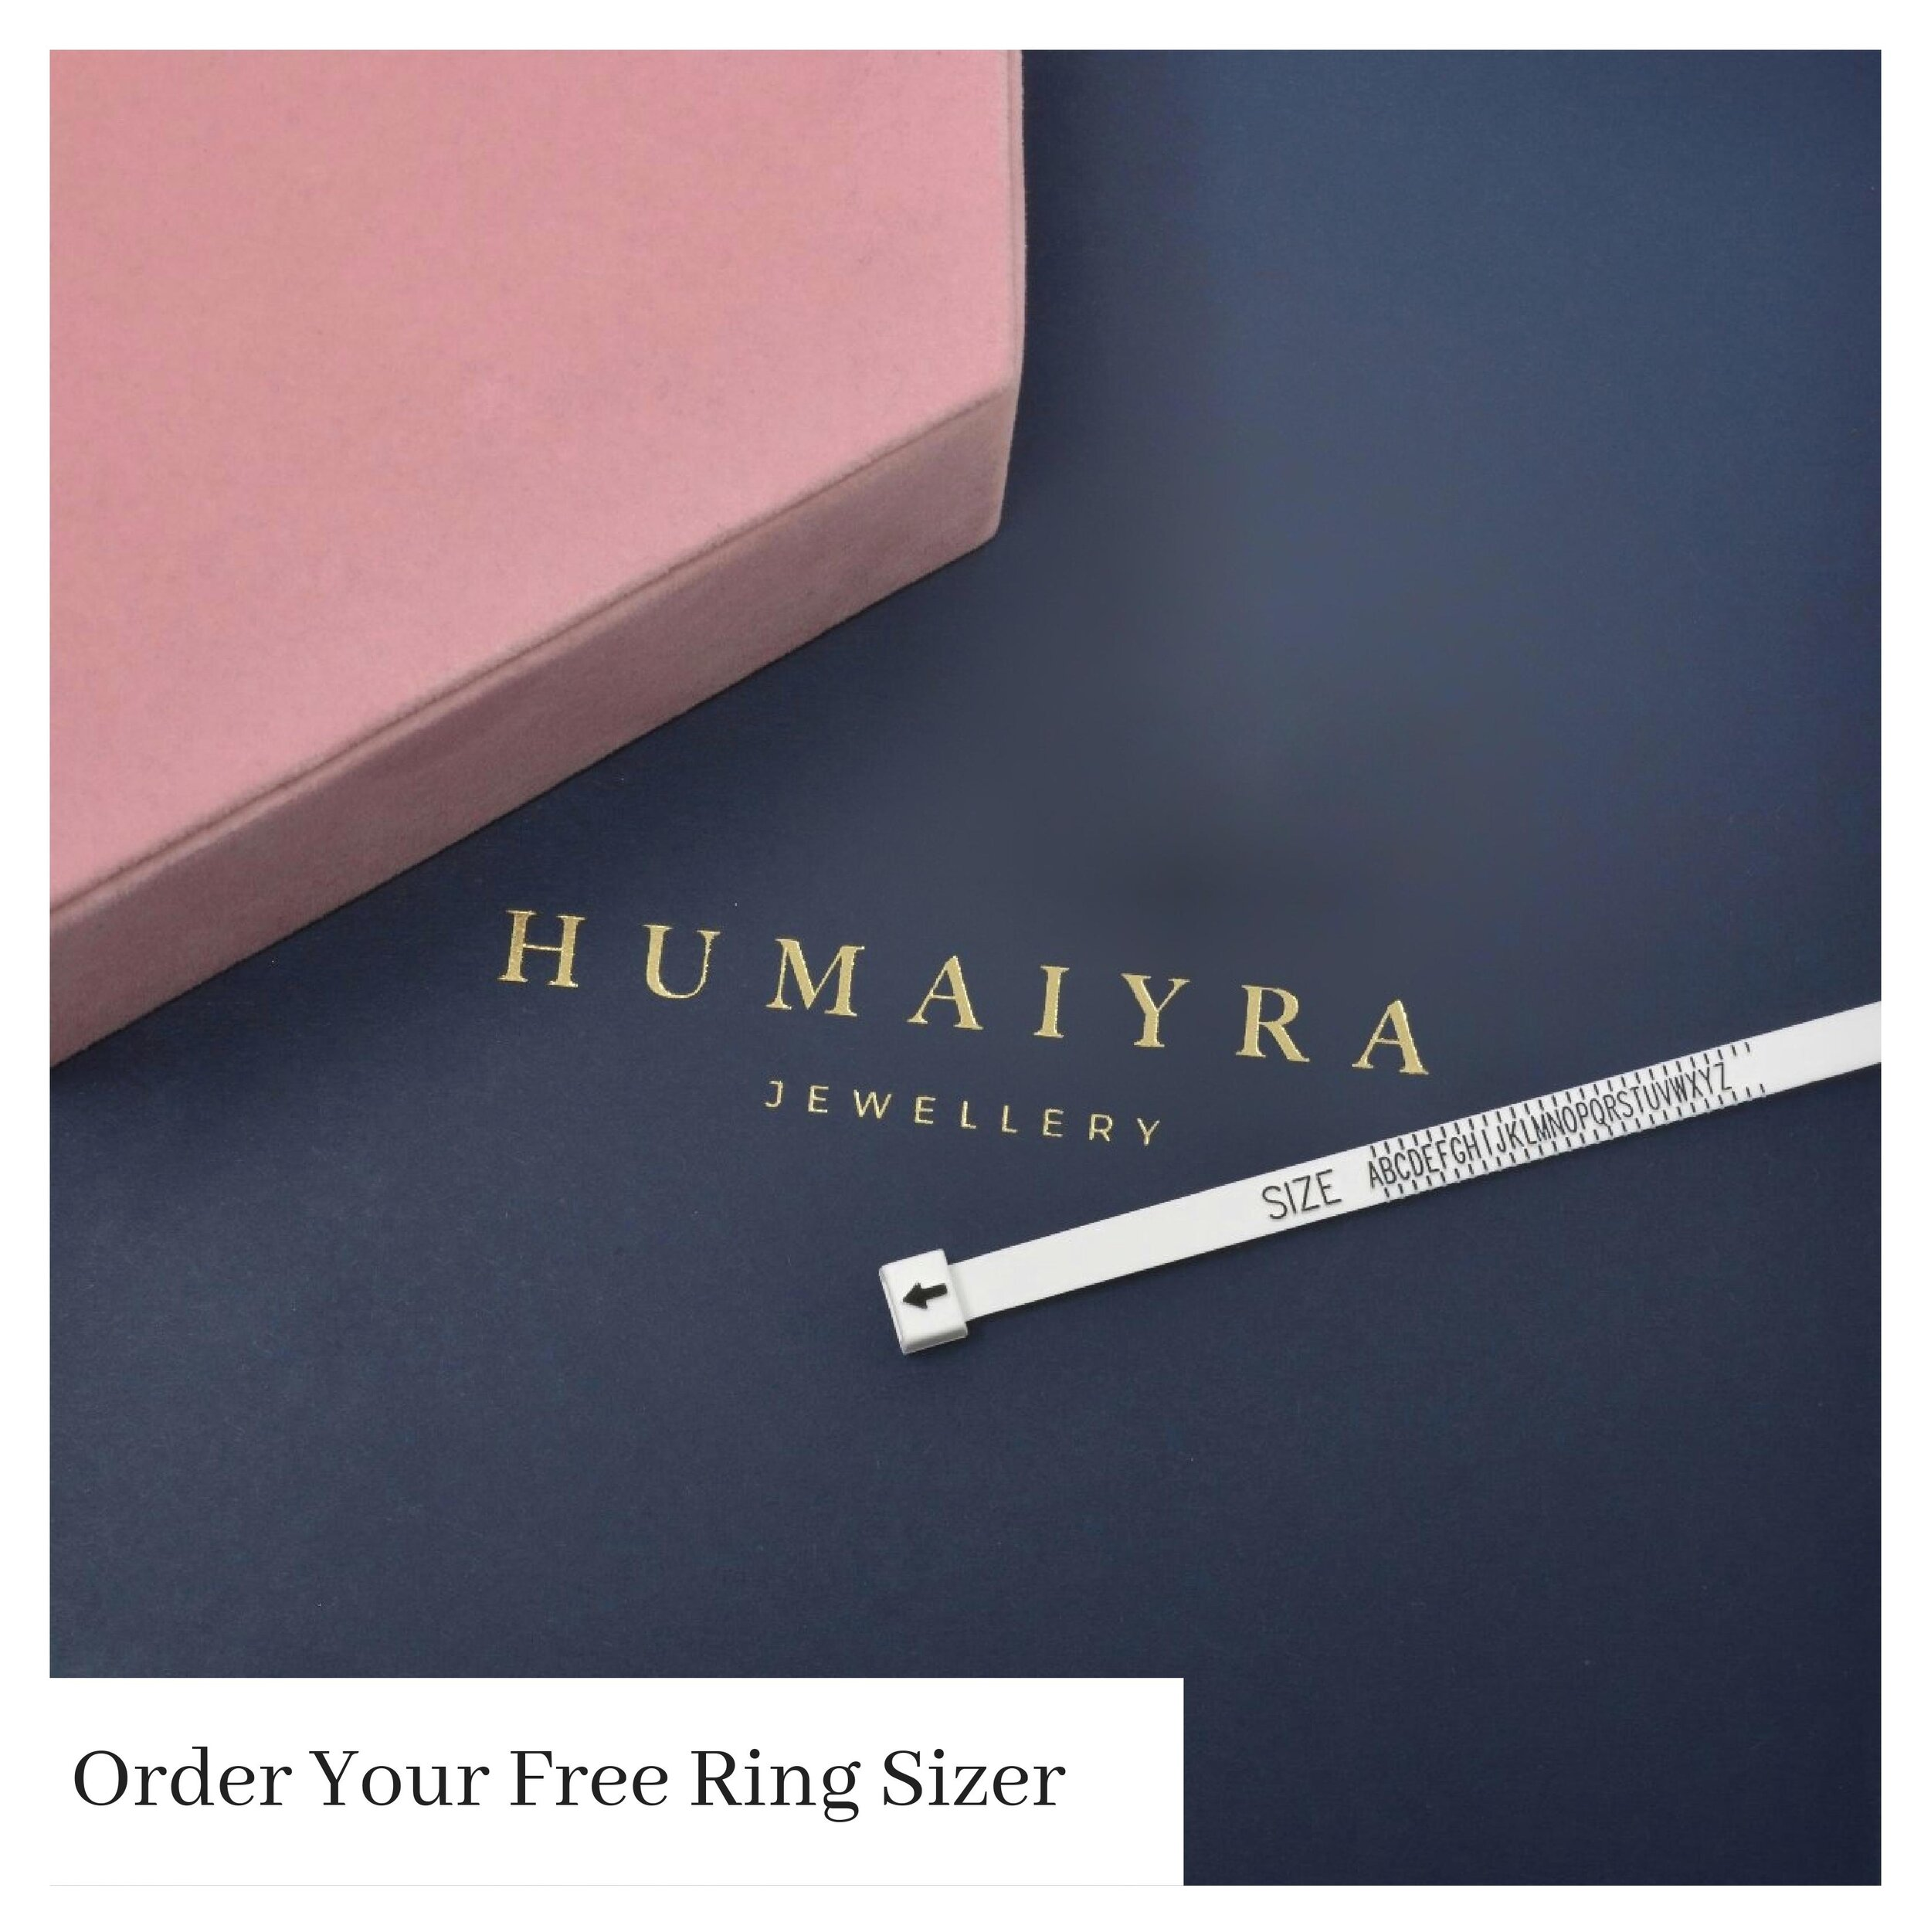 Order your free ring sizer